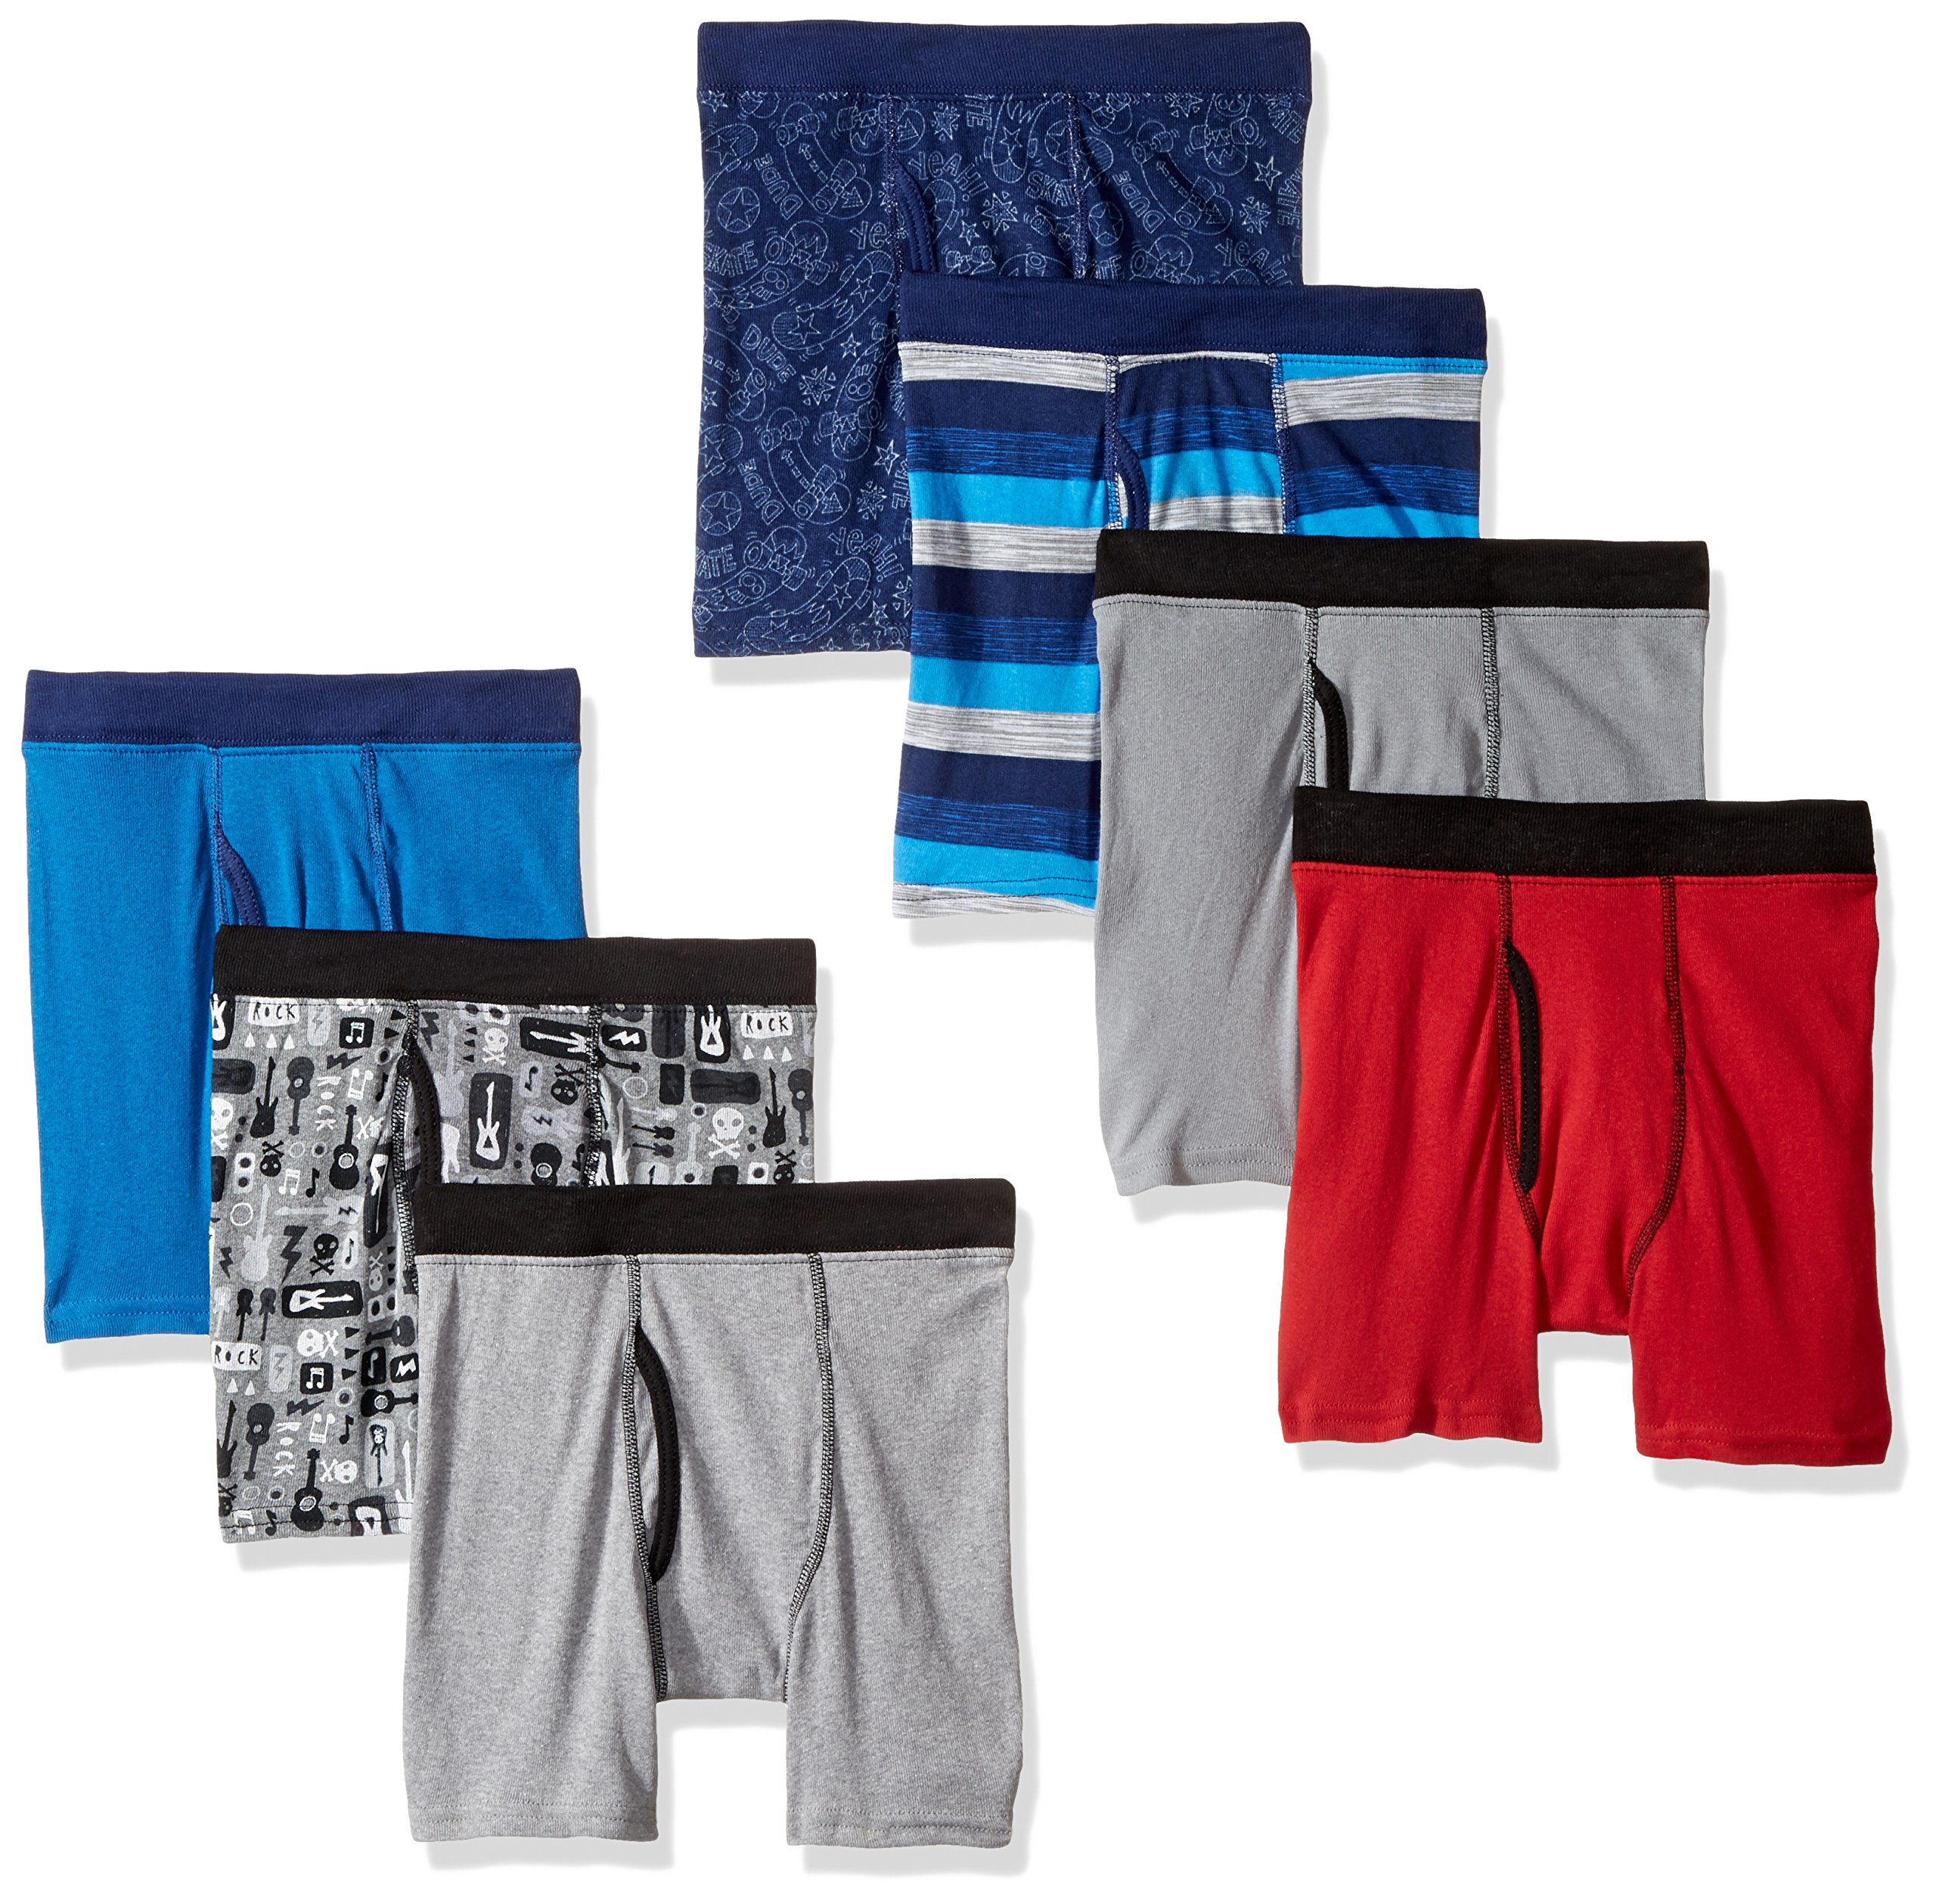 Hanes Big Boys' Red Label Comfortsoft Printed Boxer Briefs Pack of 7, Assorted, XL